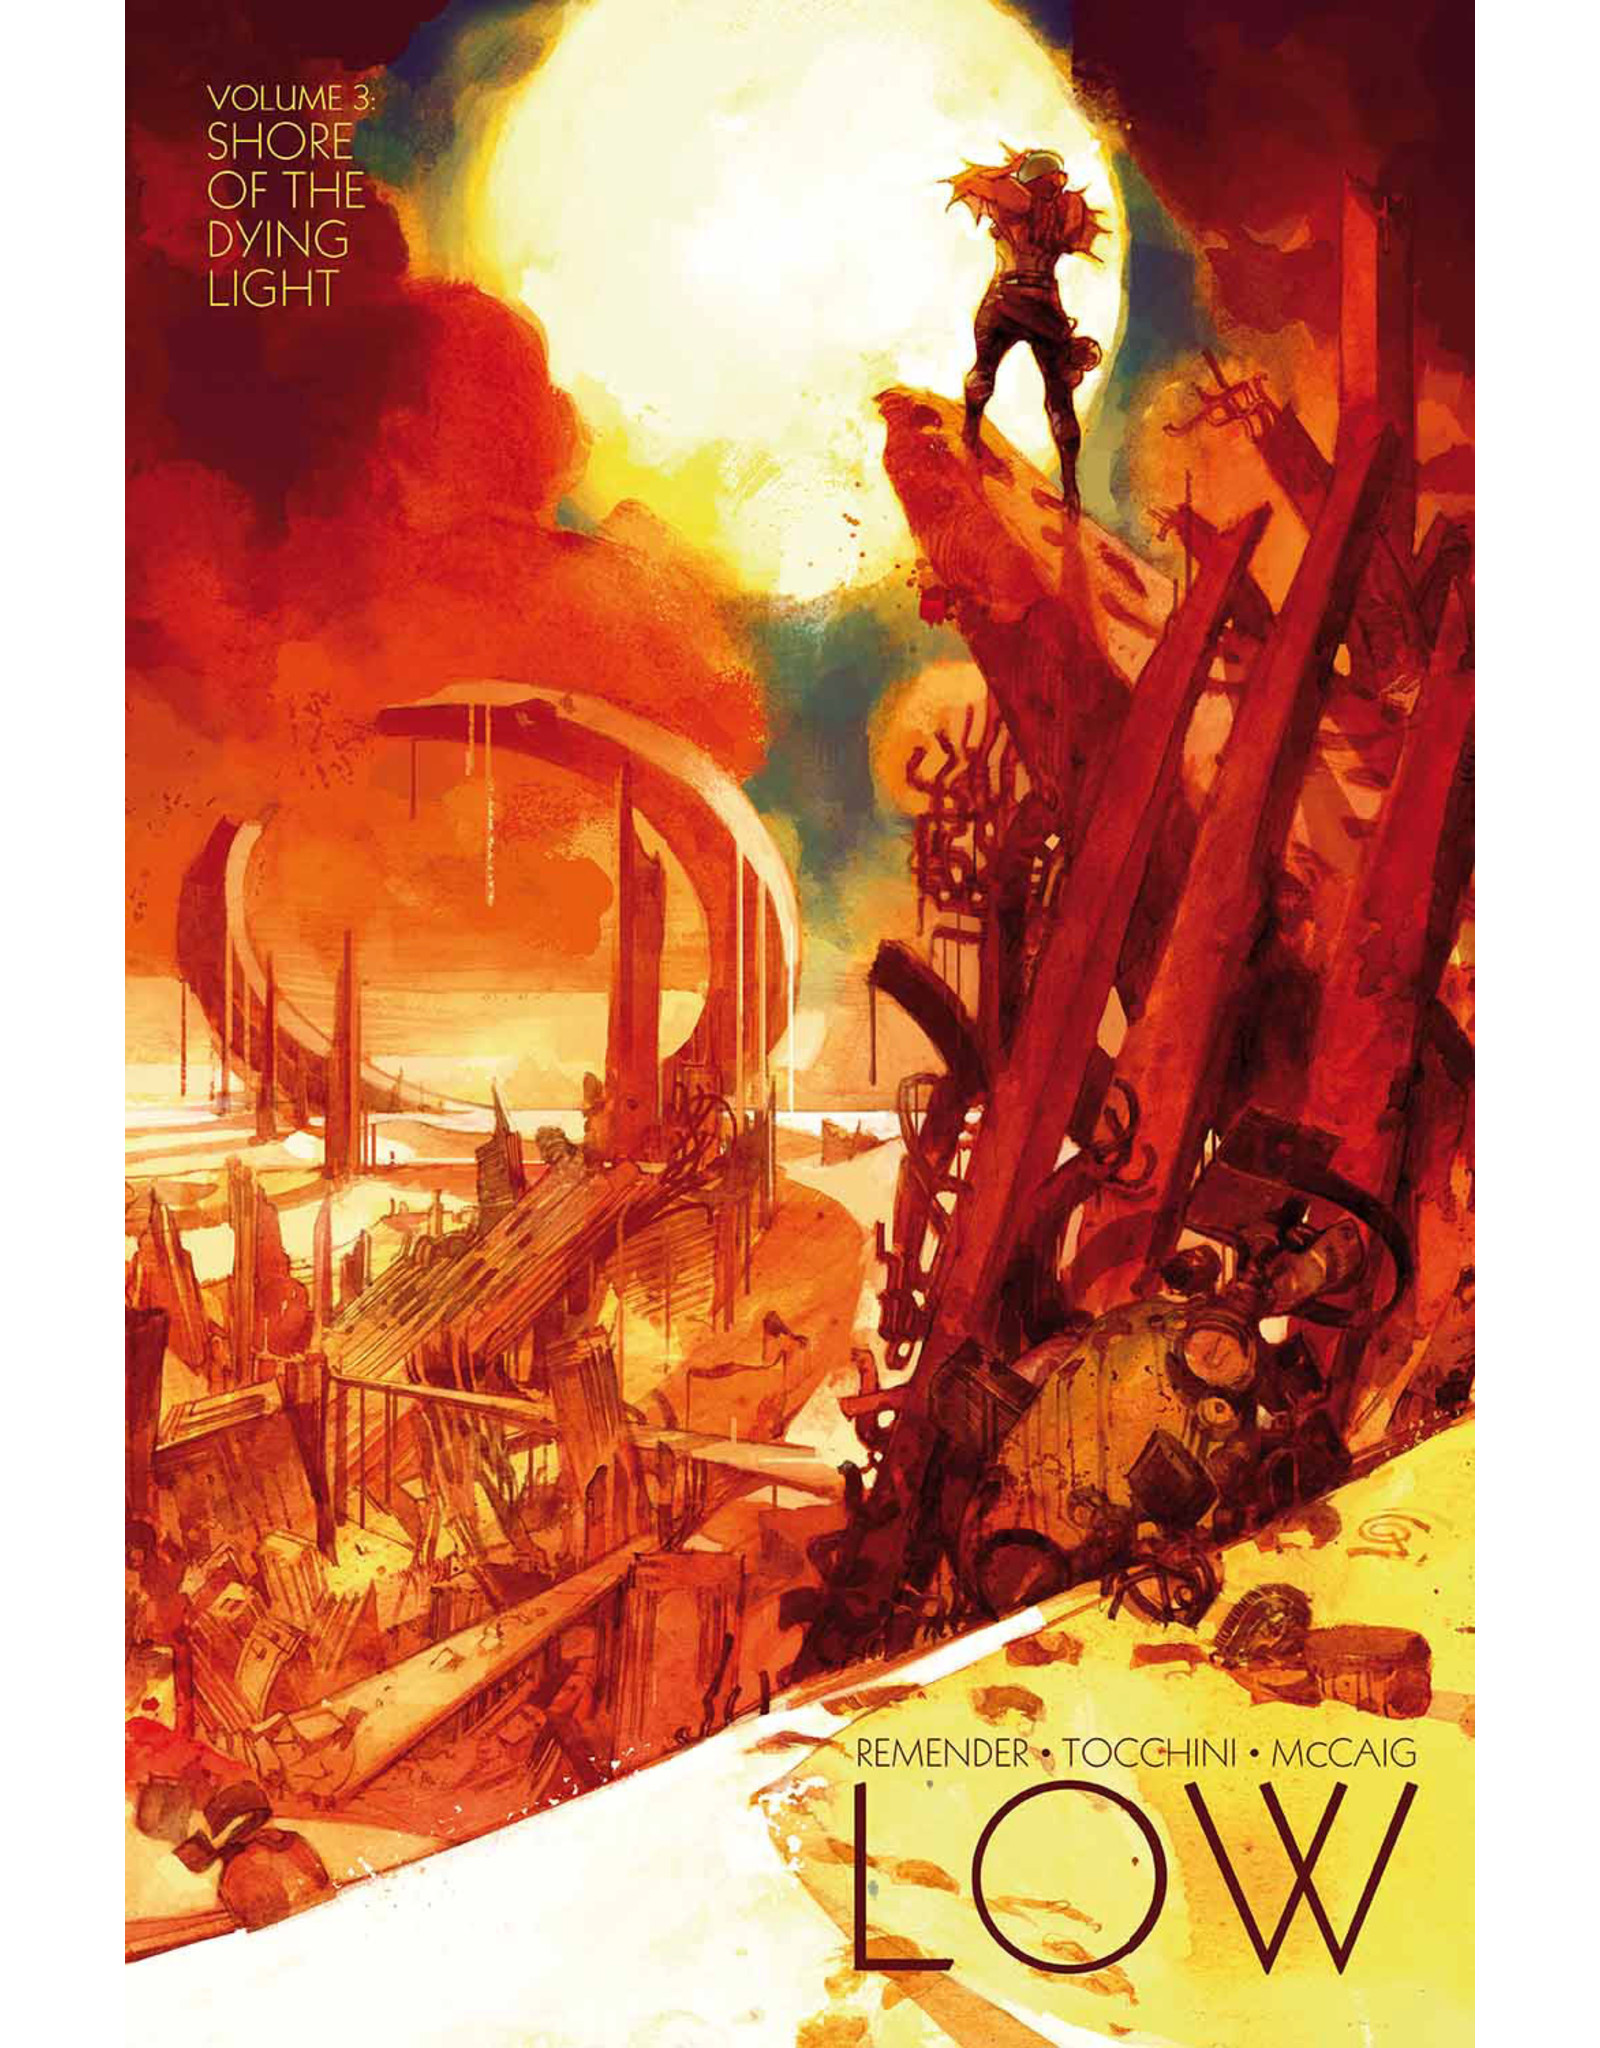 IMAGE COMICS LOW TP VOL 03 SHORE OF THE DYING LIGHT